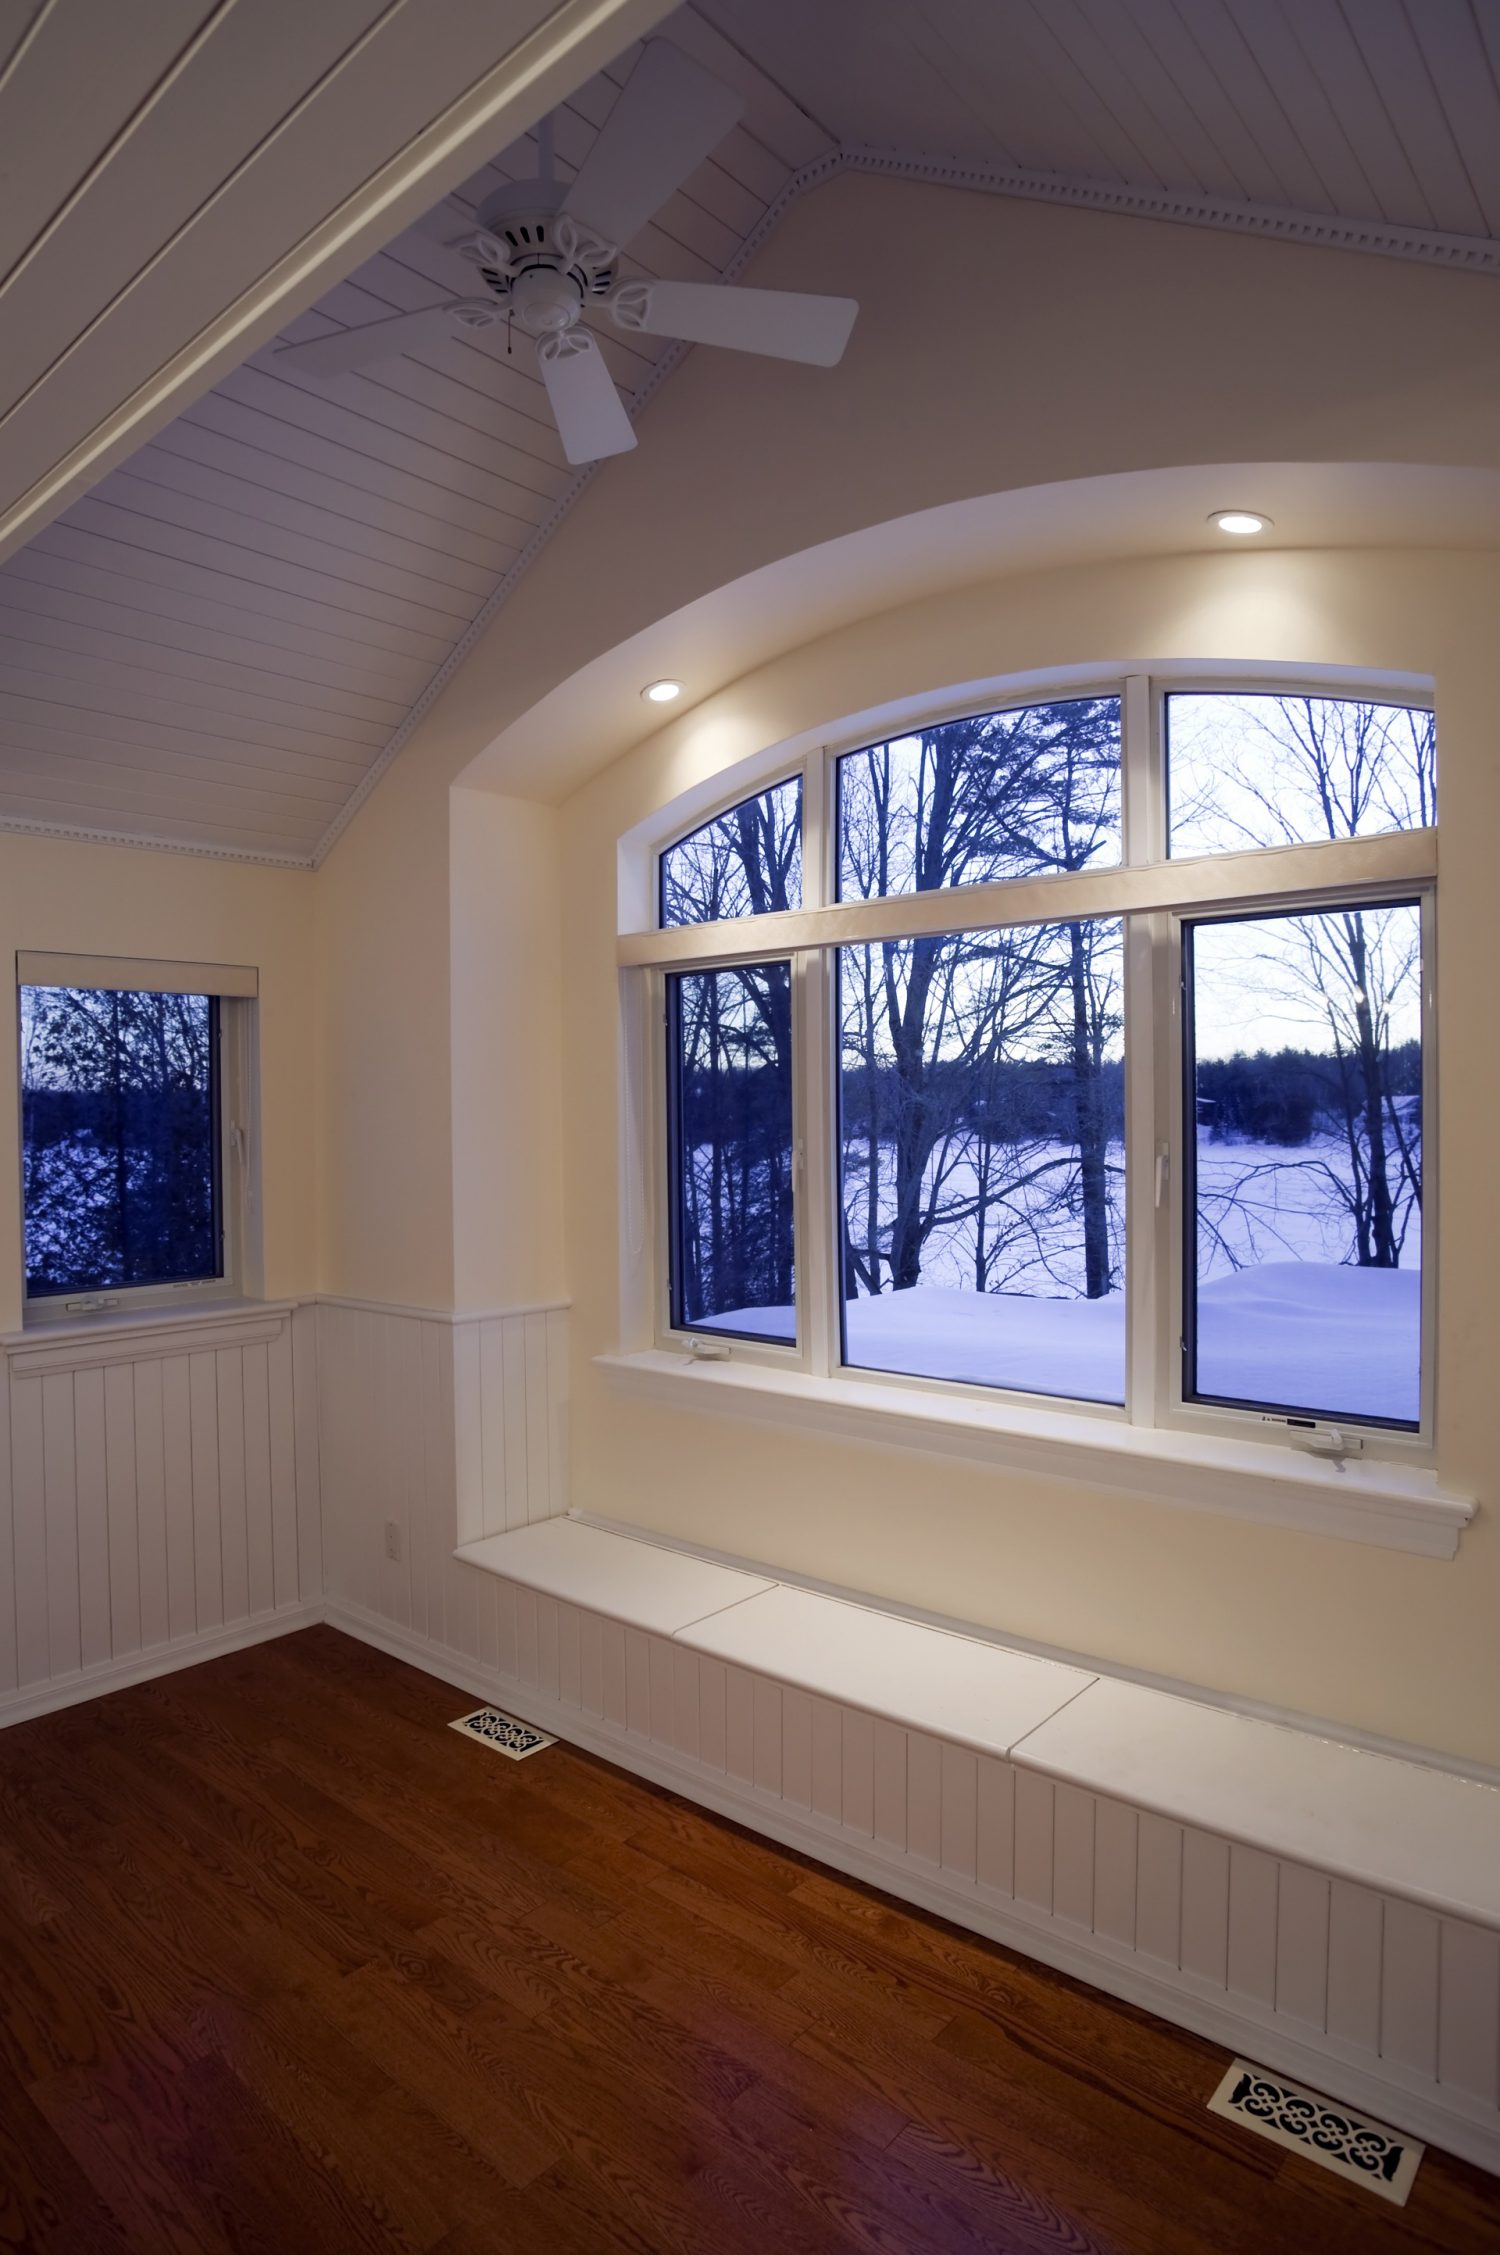 A corner with a large window showing snow outside.